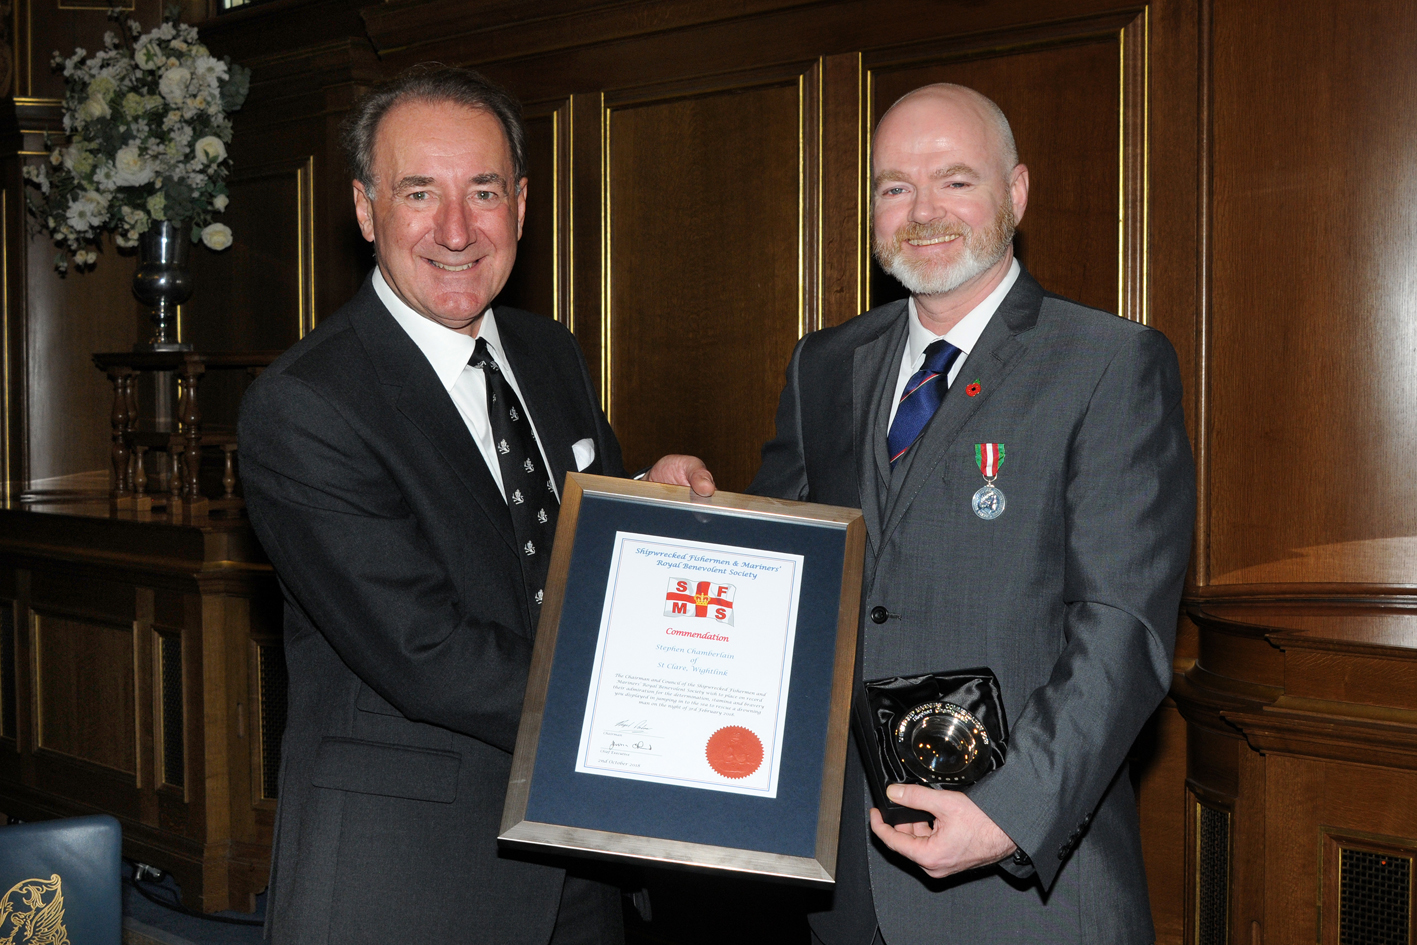 Steve Chamberlain with Admiral Sir George Zambellas of the Shipwrecked Fishermen and Mariners' Royal Benevolent Society